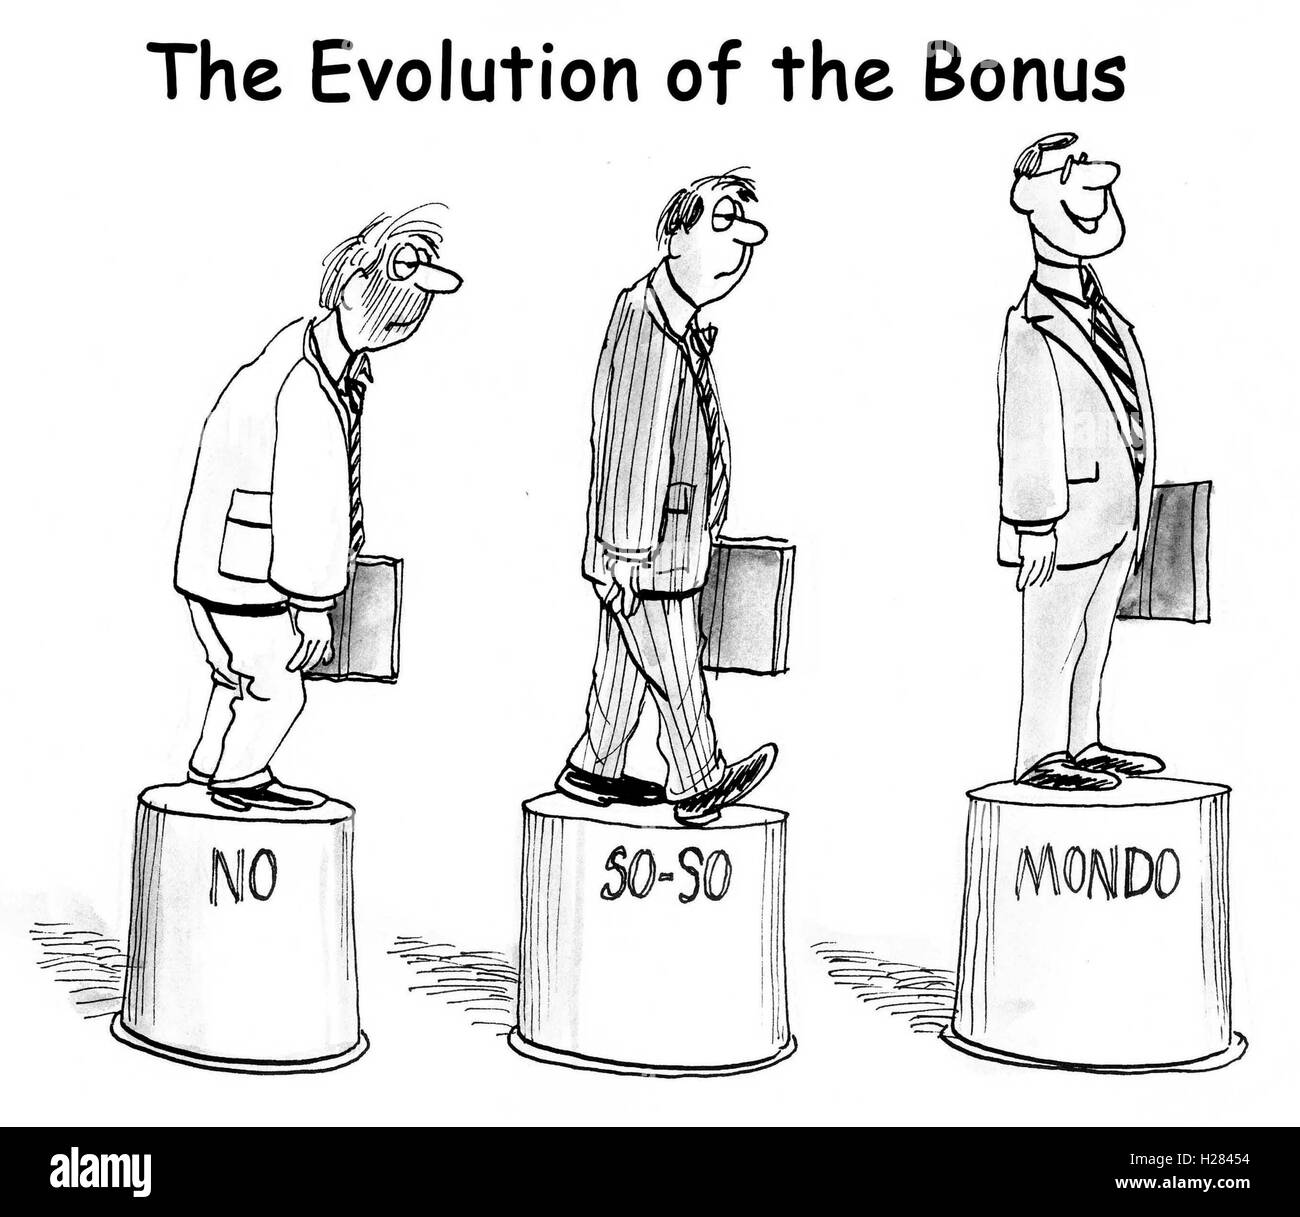 Evolution of the Bonus - Stock Image